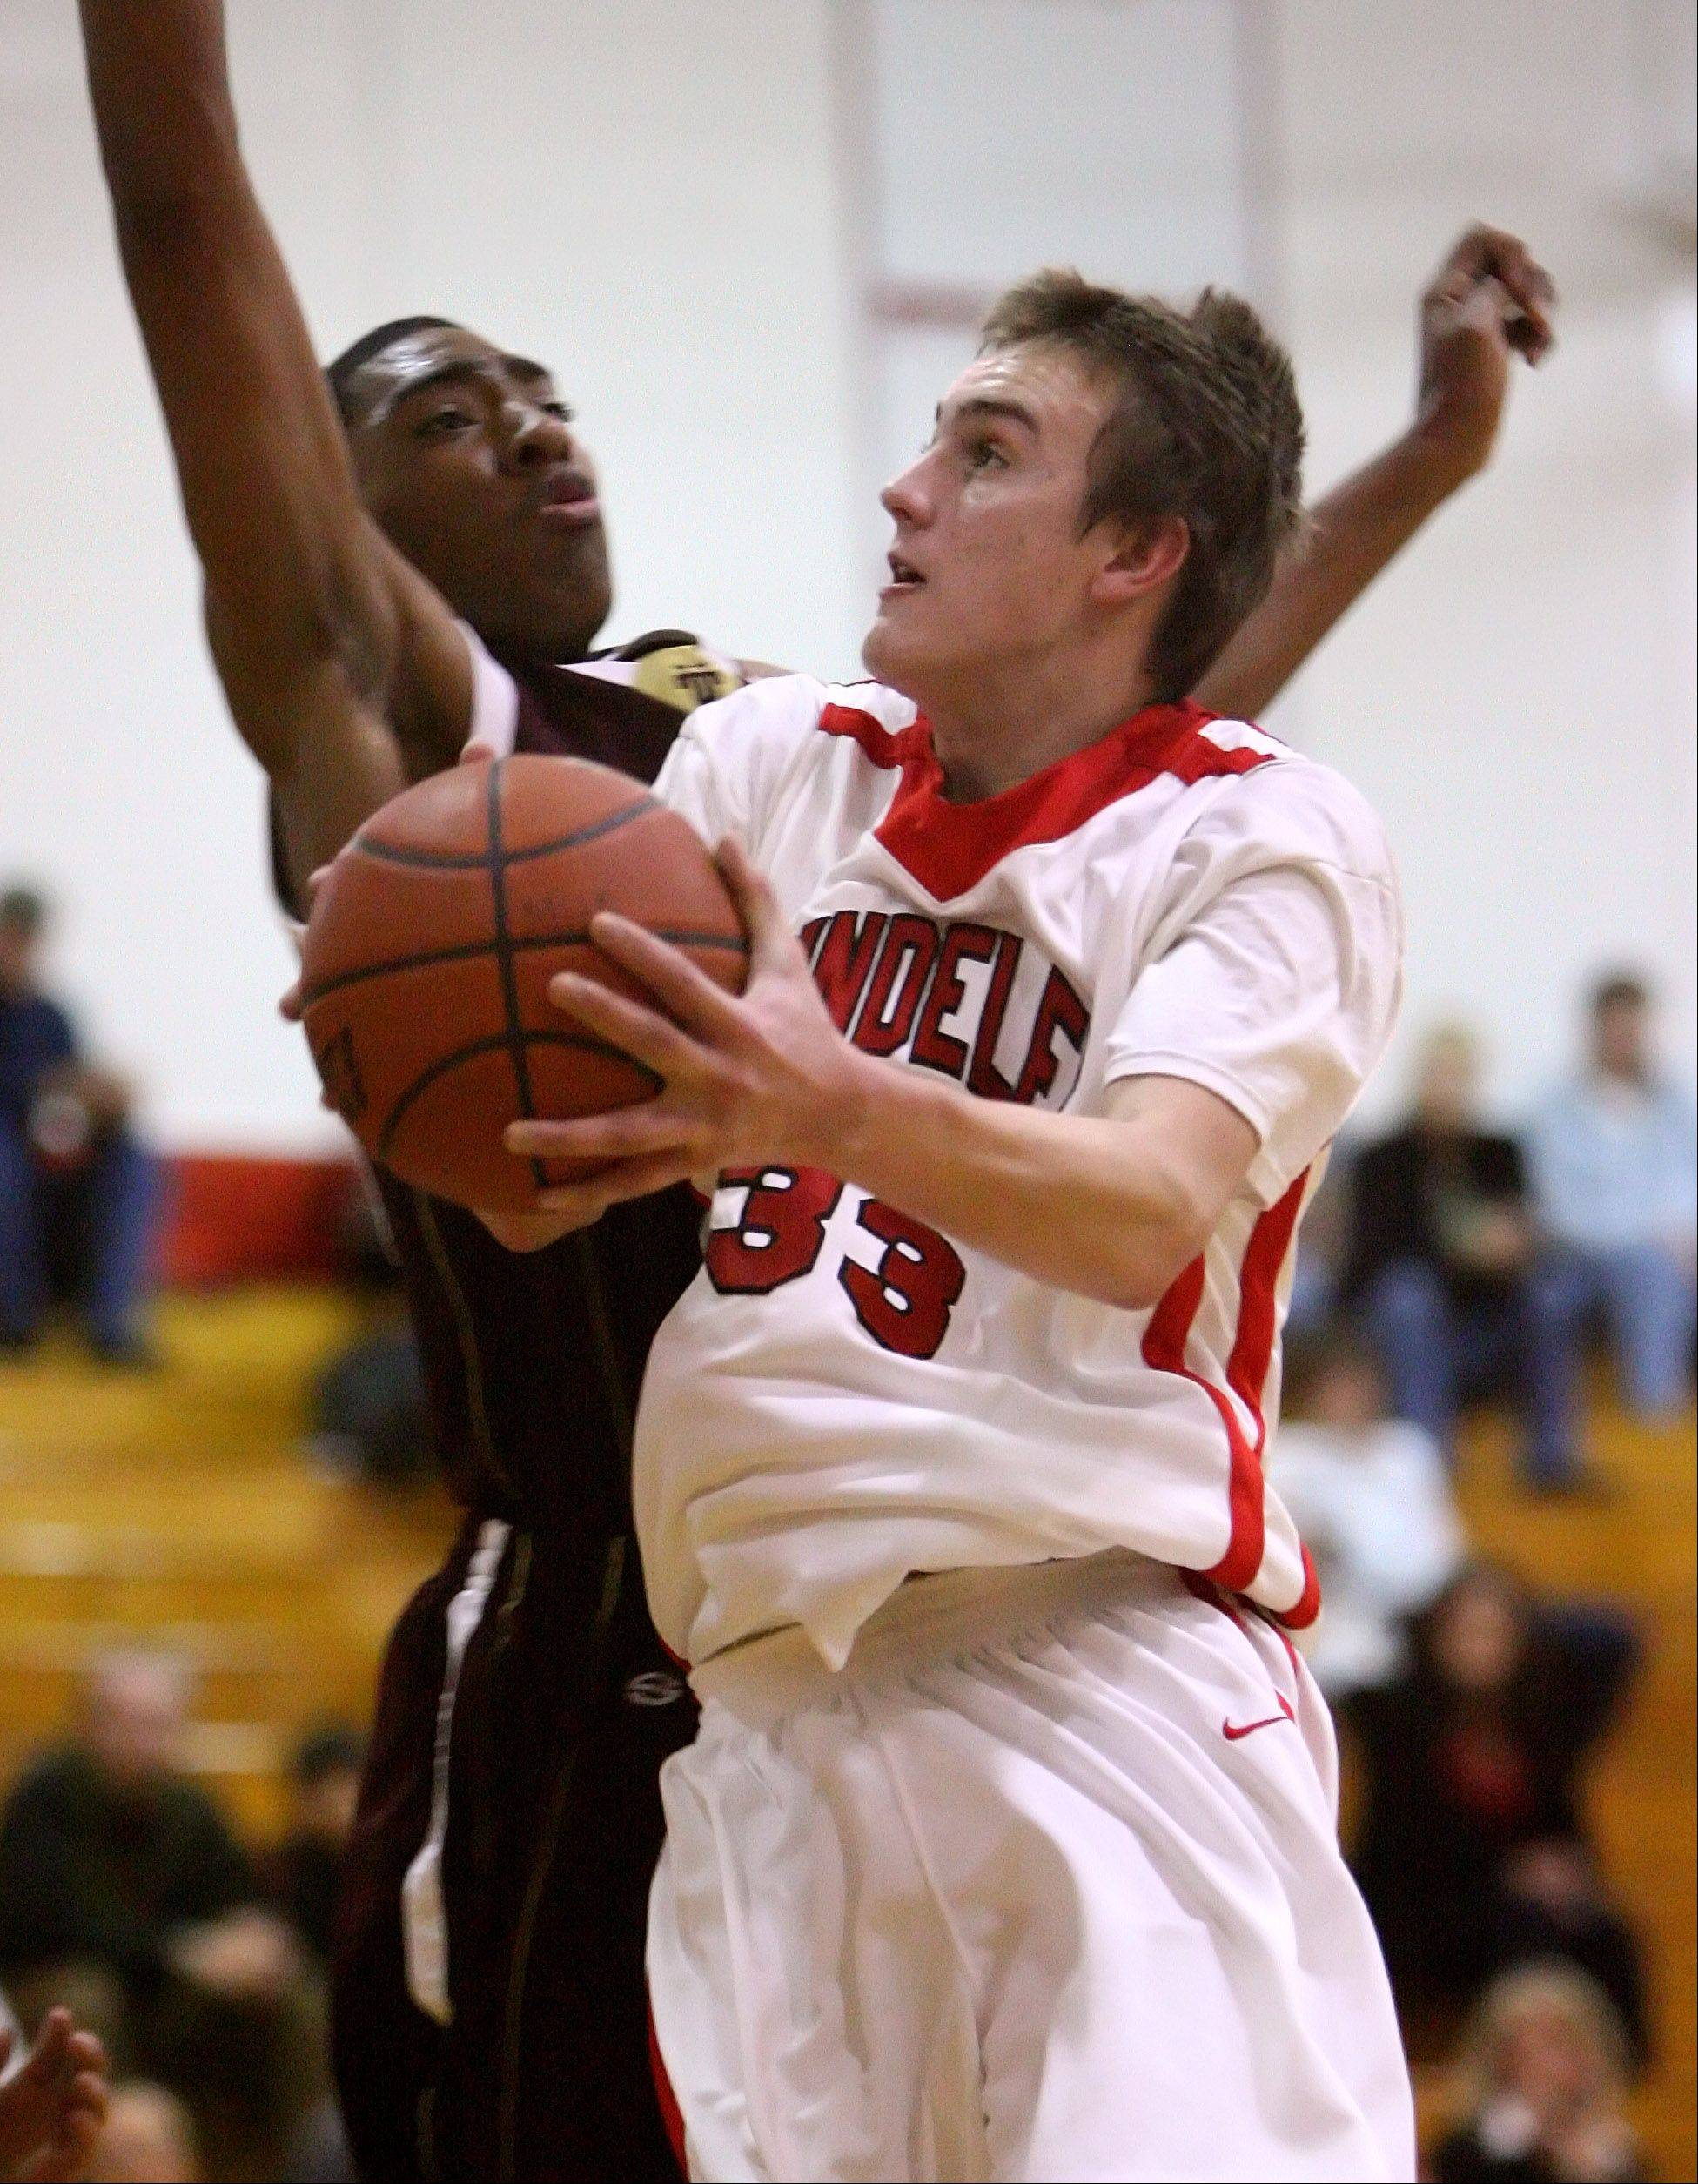 Mundelein's Sean O'Brien drives with the ball.